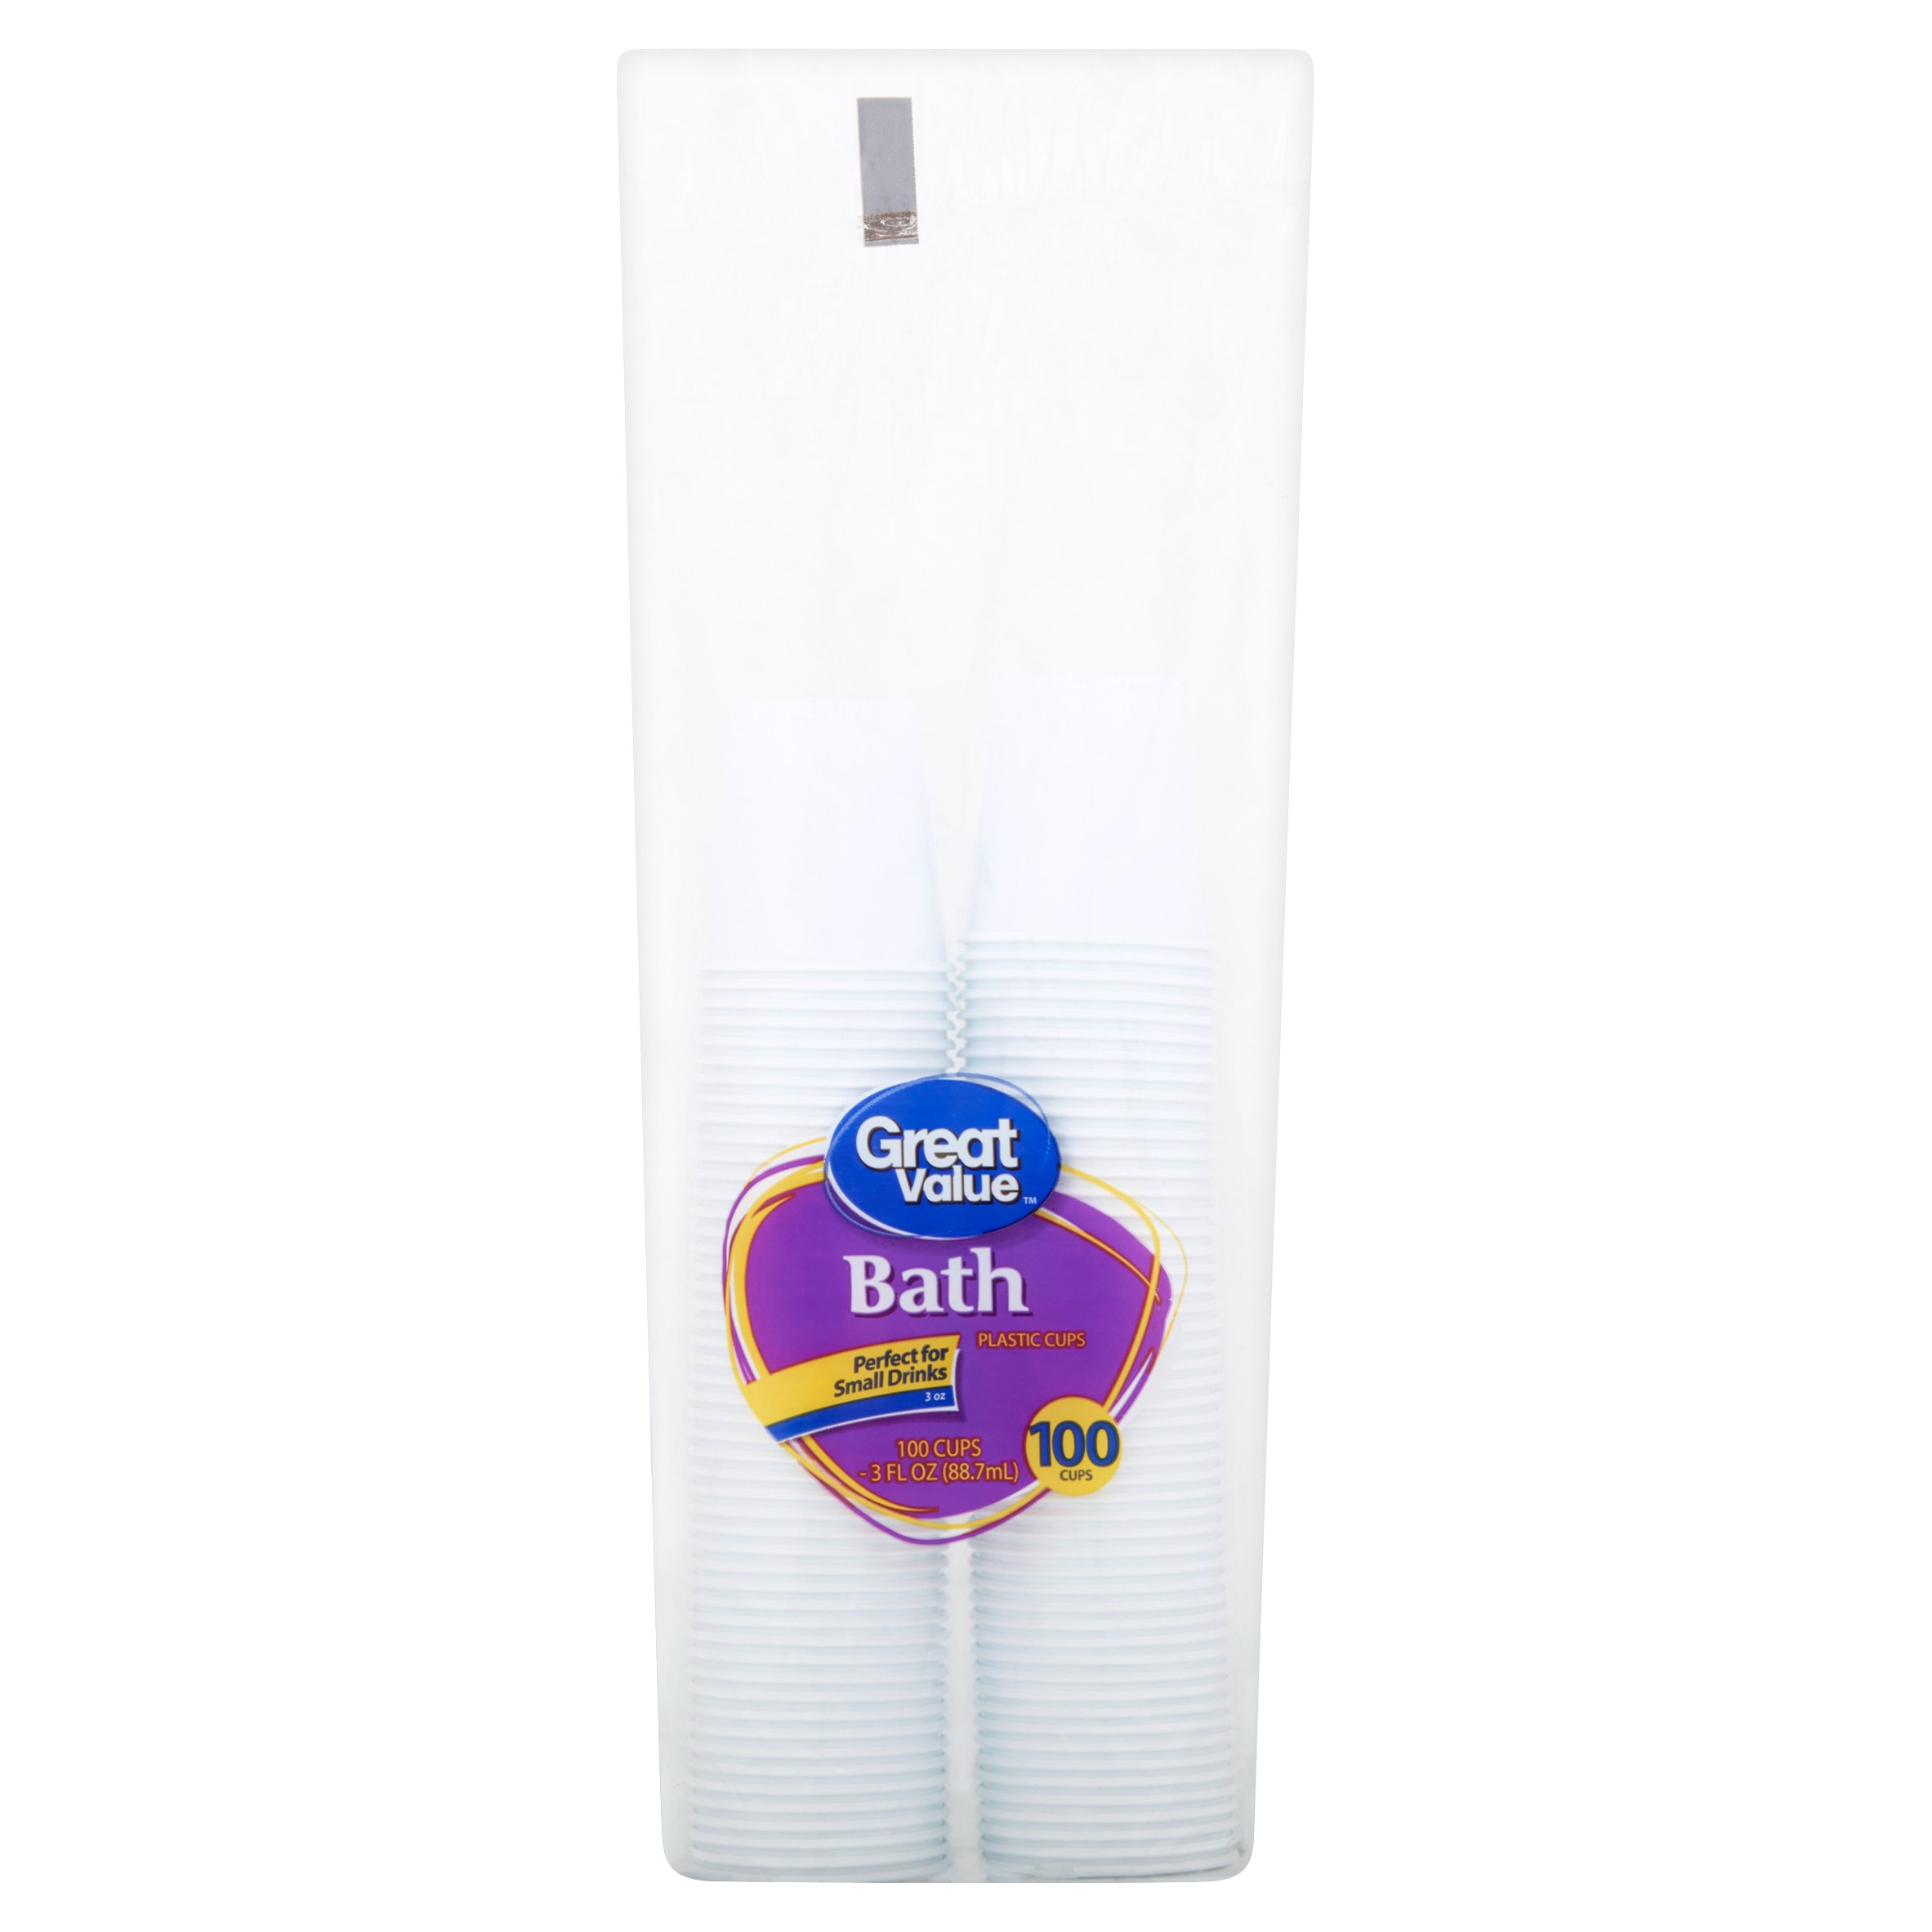 Great Value Bath Plastic Cups, 3 oz, 100 Count